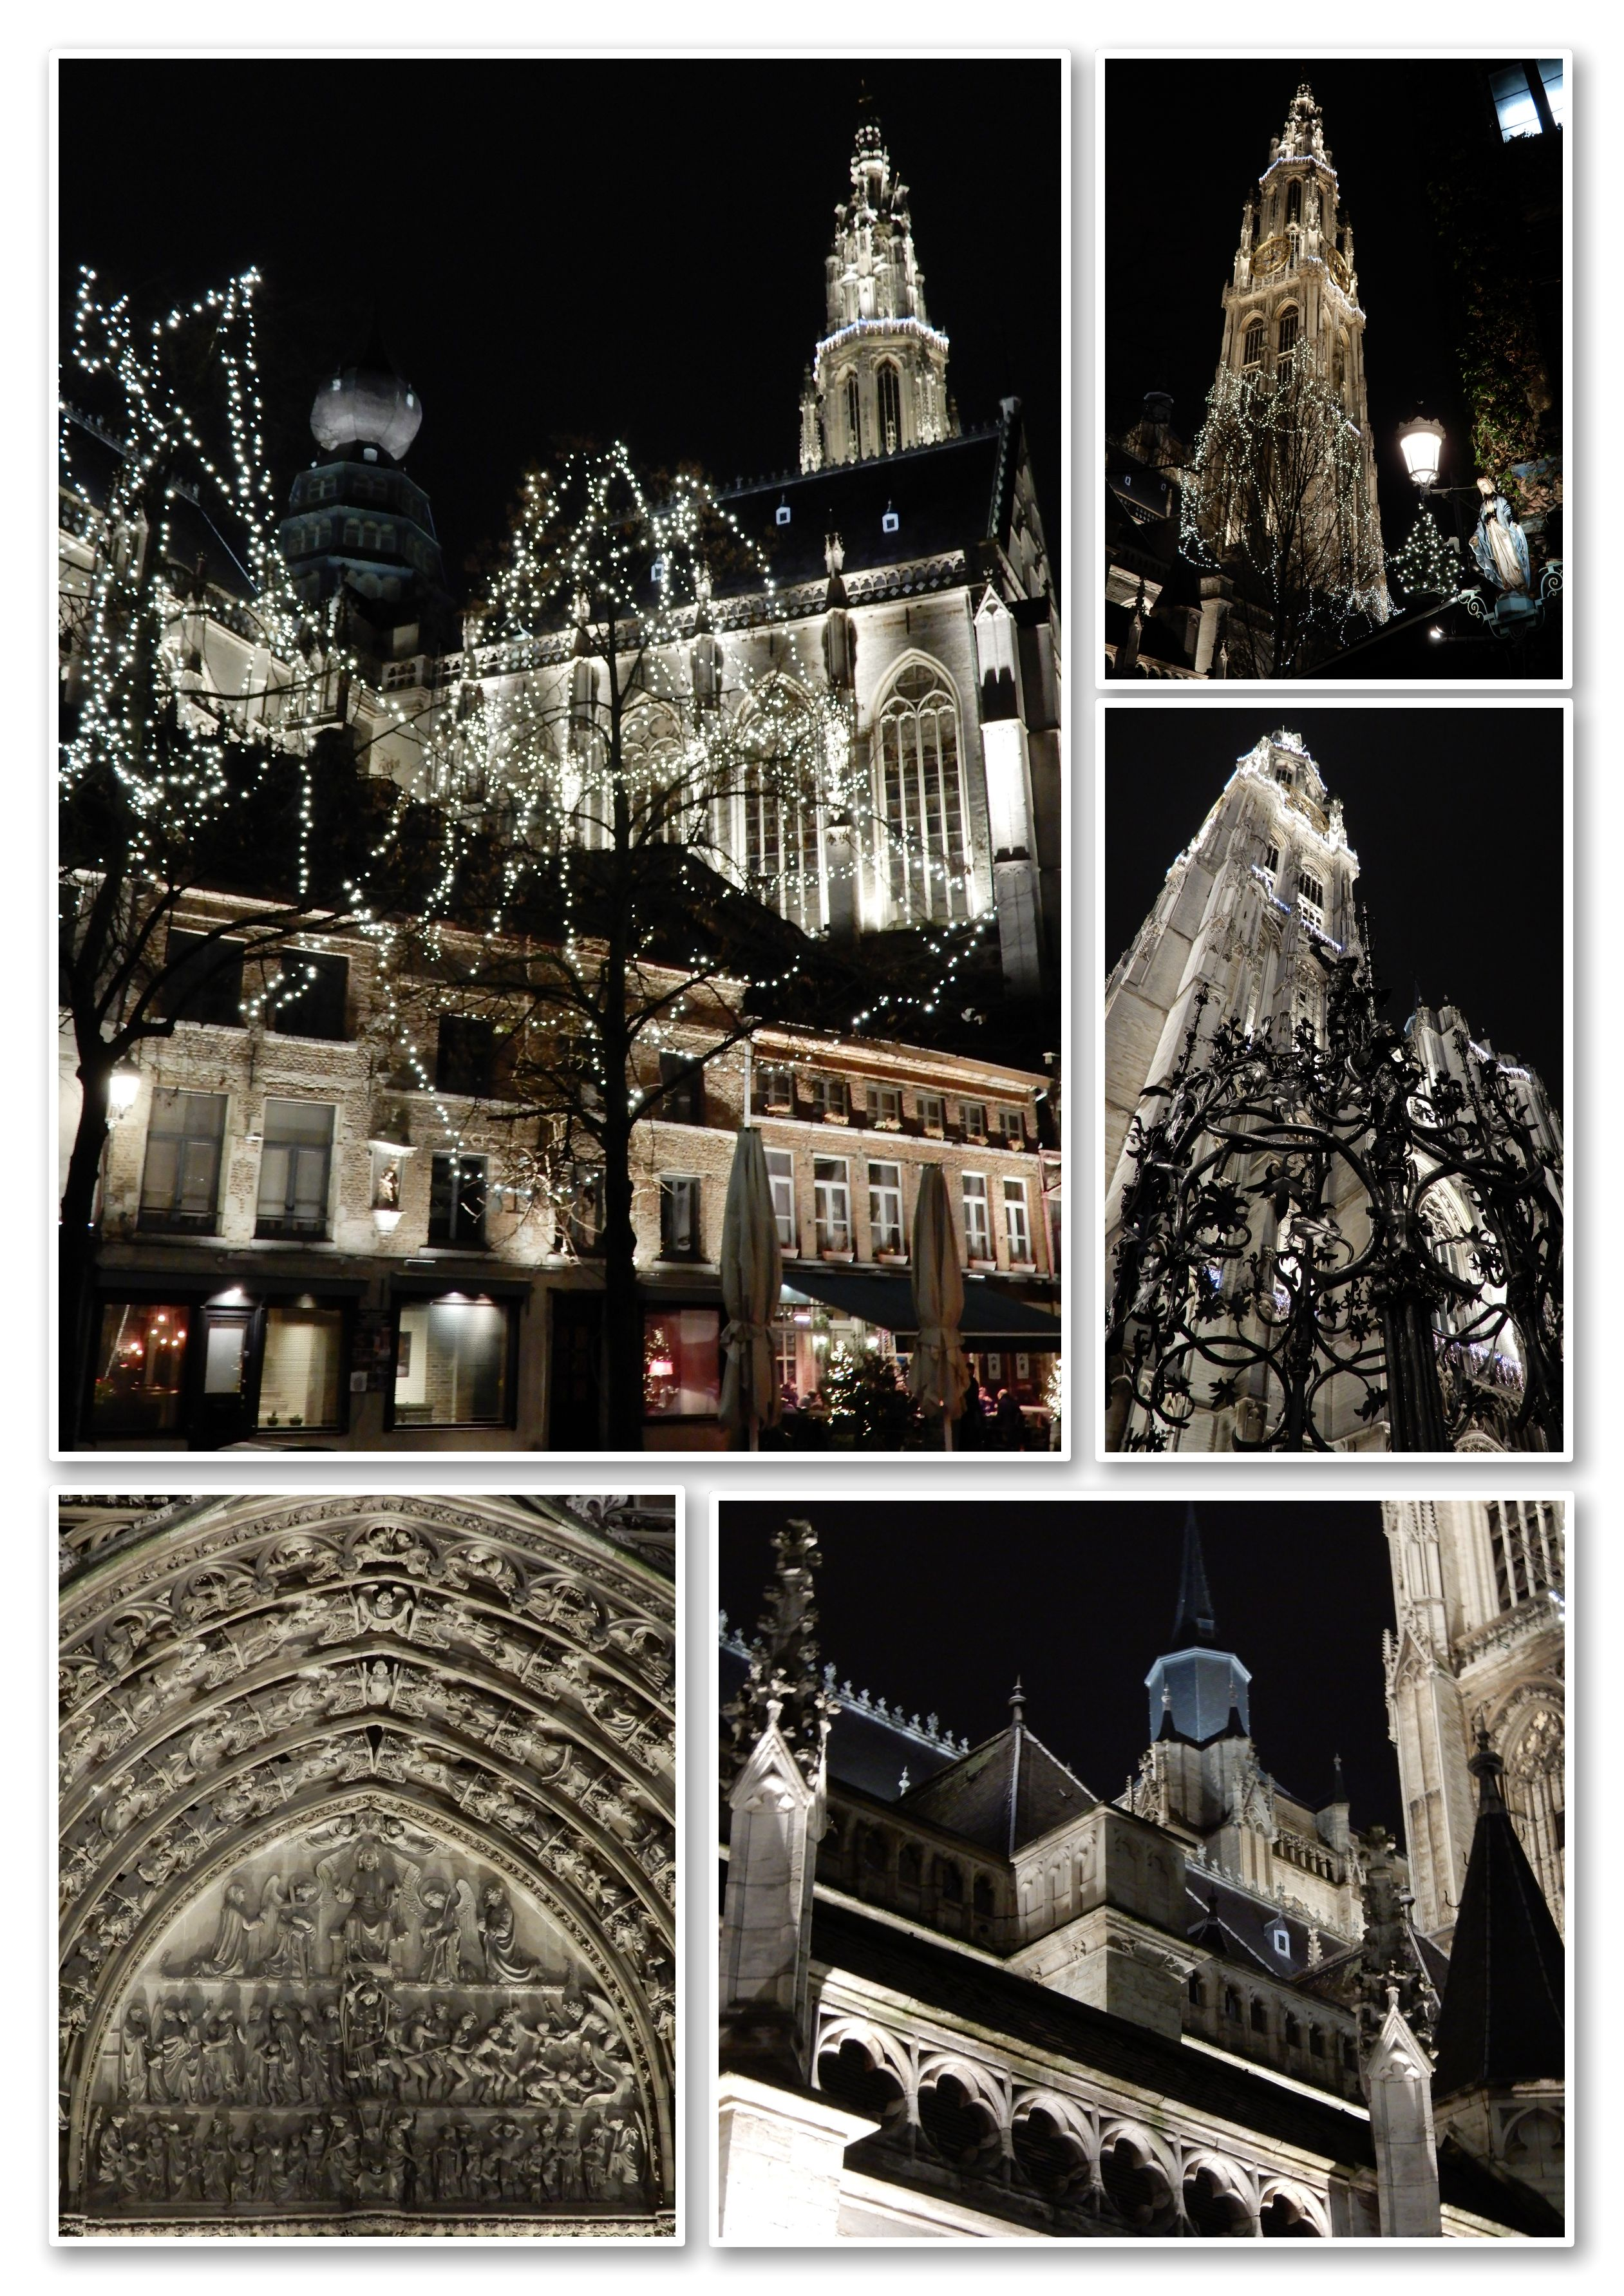 LA CATHEDRALE D'ANVERS BY NIGHT